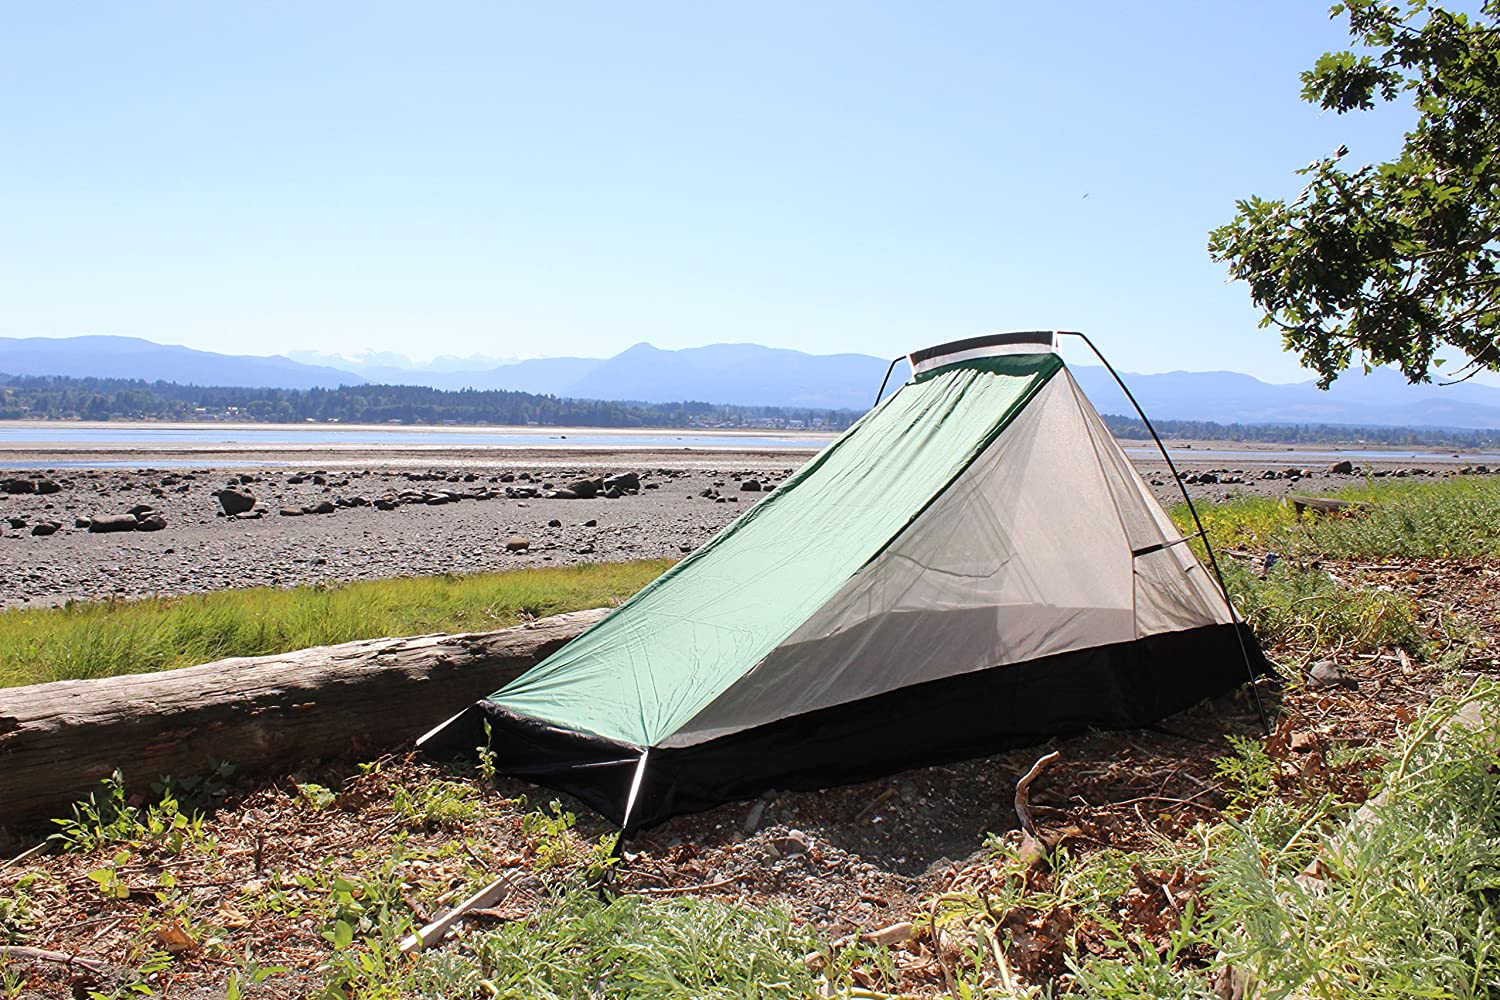 Amazon.com  Aqua Quest WEST COAST Bivvy Tent Mosquito Bug Net Mesh for Backpacking Trekking Hunting Climbing  Backpacking Tents  Sports u0026 Outdoors : 2 person bivy tent - afamca.org